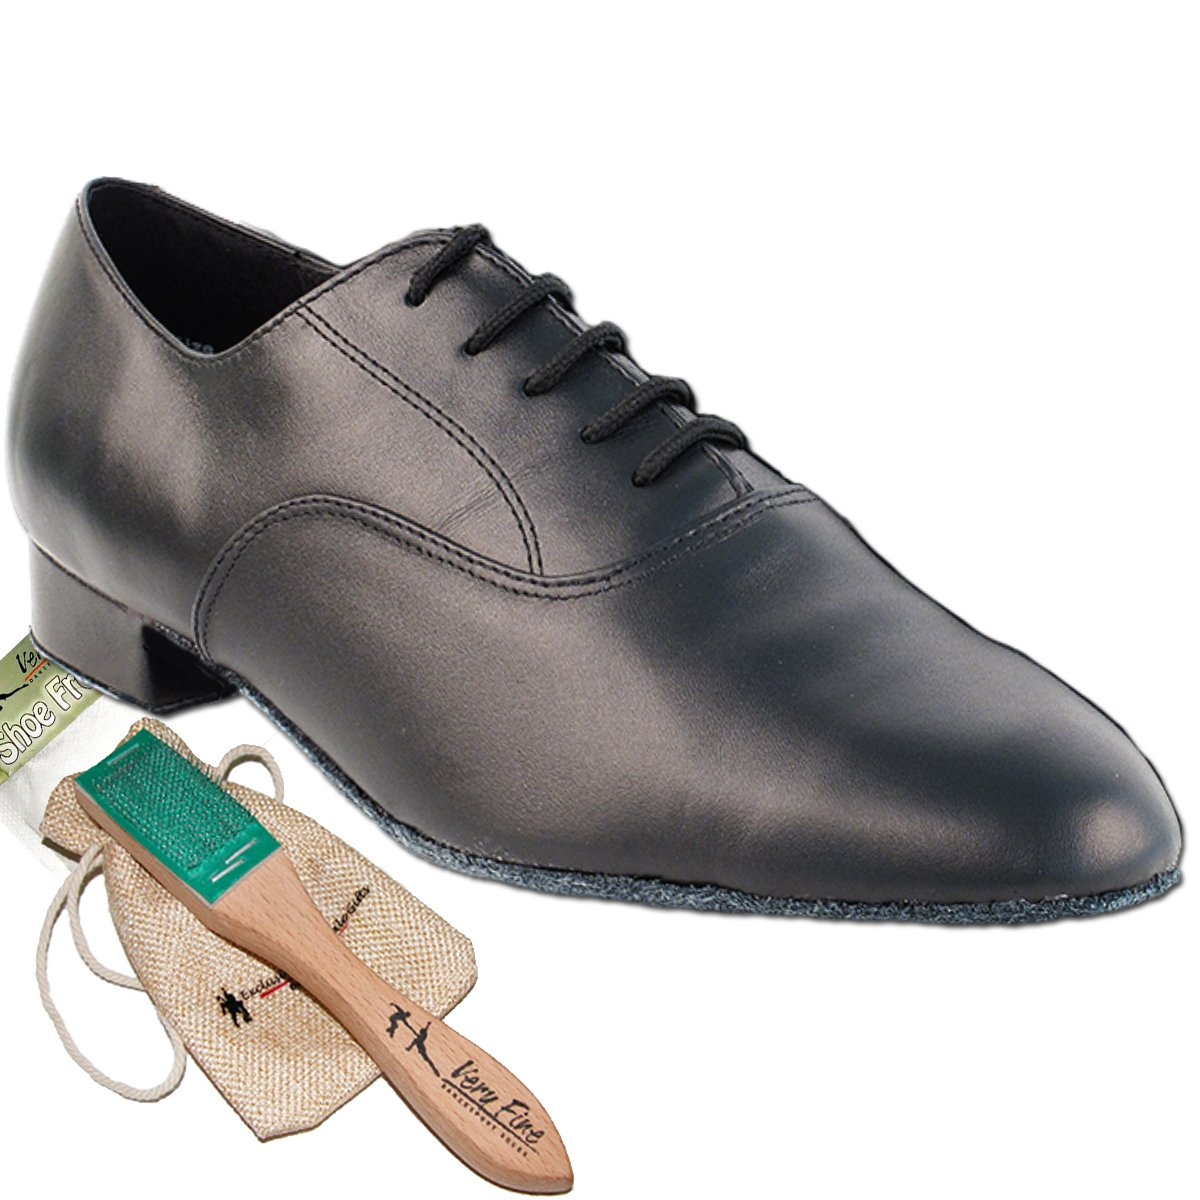 Mens Ballroom Dance Shoes Standard & Smooth Tango Wedding Salsa Shoe 919101EB -Very Fine 1 [Bundle of 5]